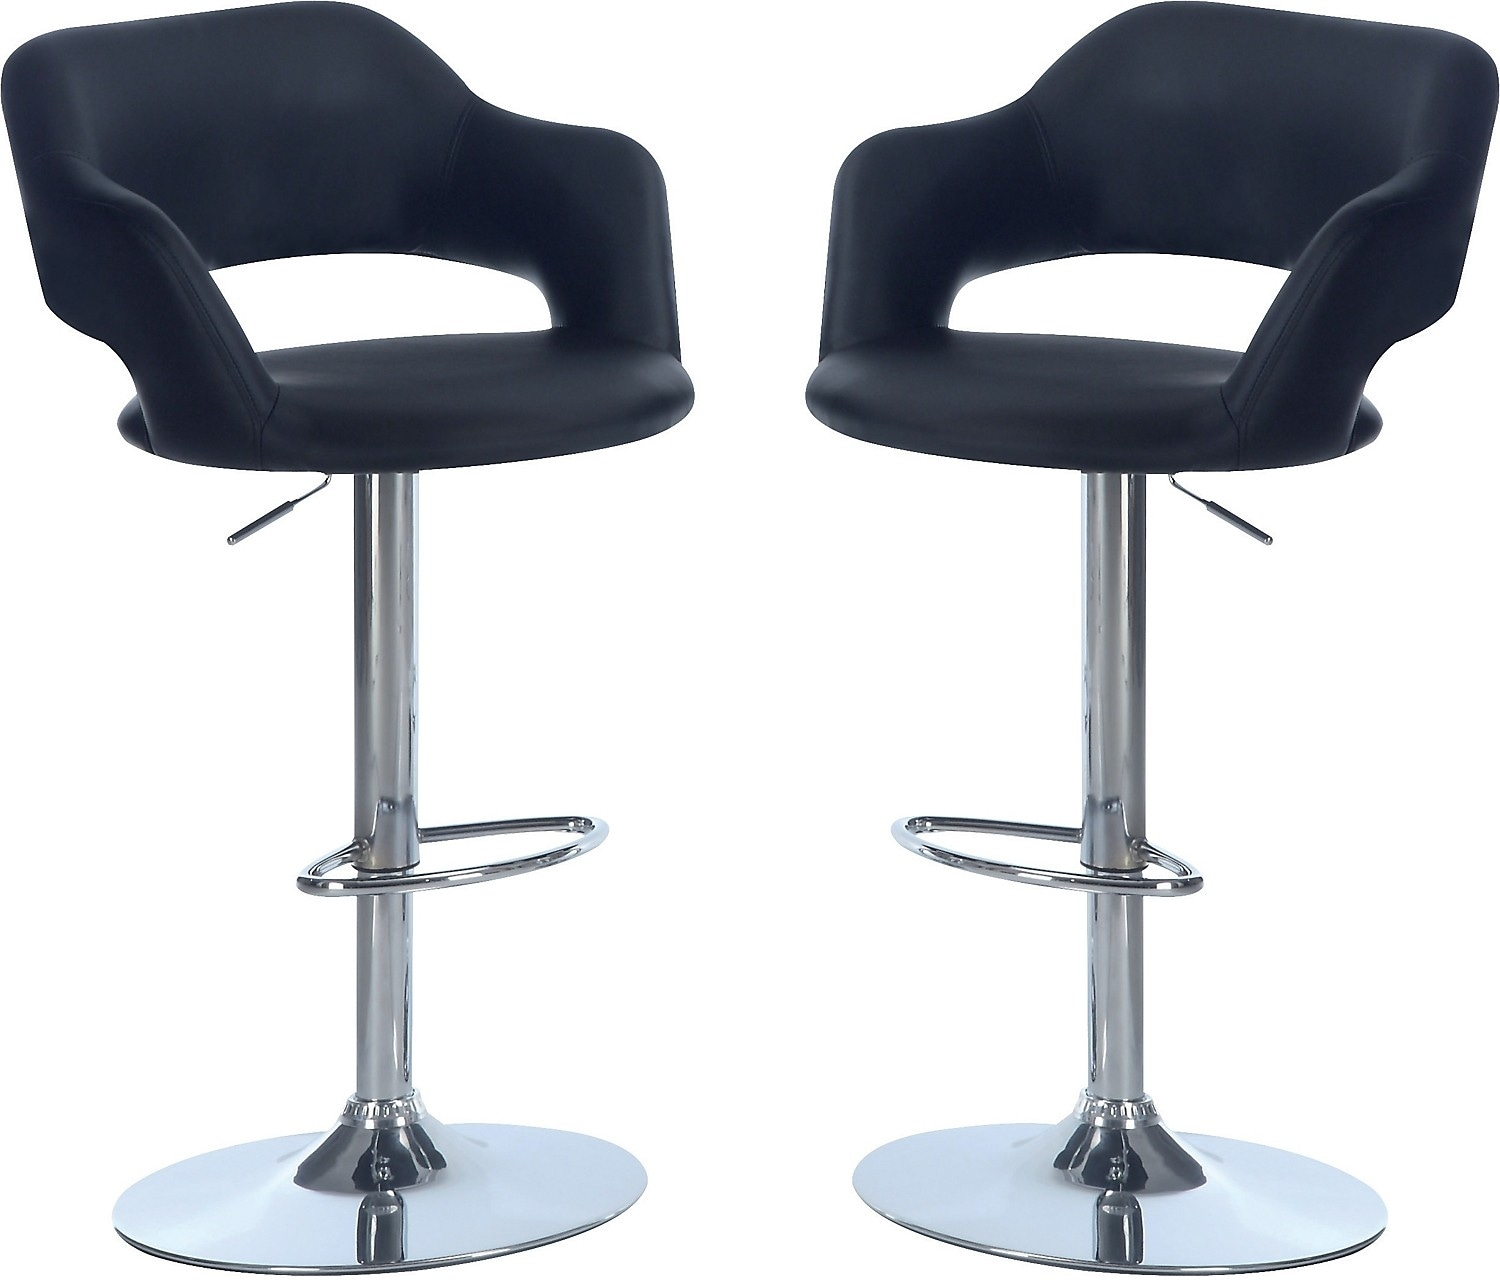 Hydraulic Bar Stool Package Black The Brick : 341582 from www.thebrick.com size 1500 x 1280 jpeg 135kB